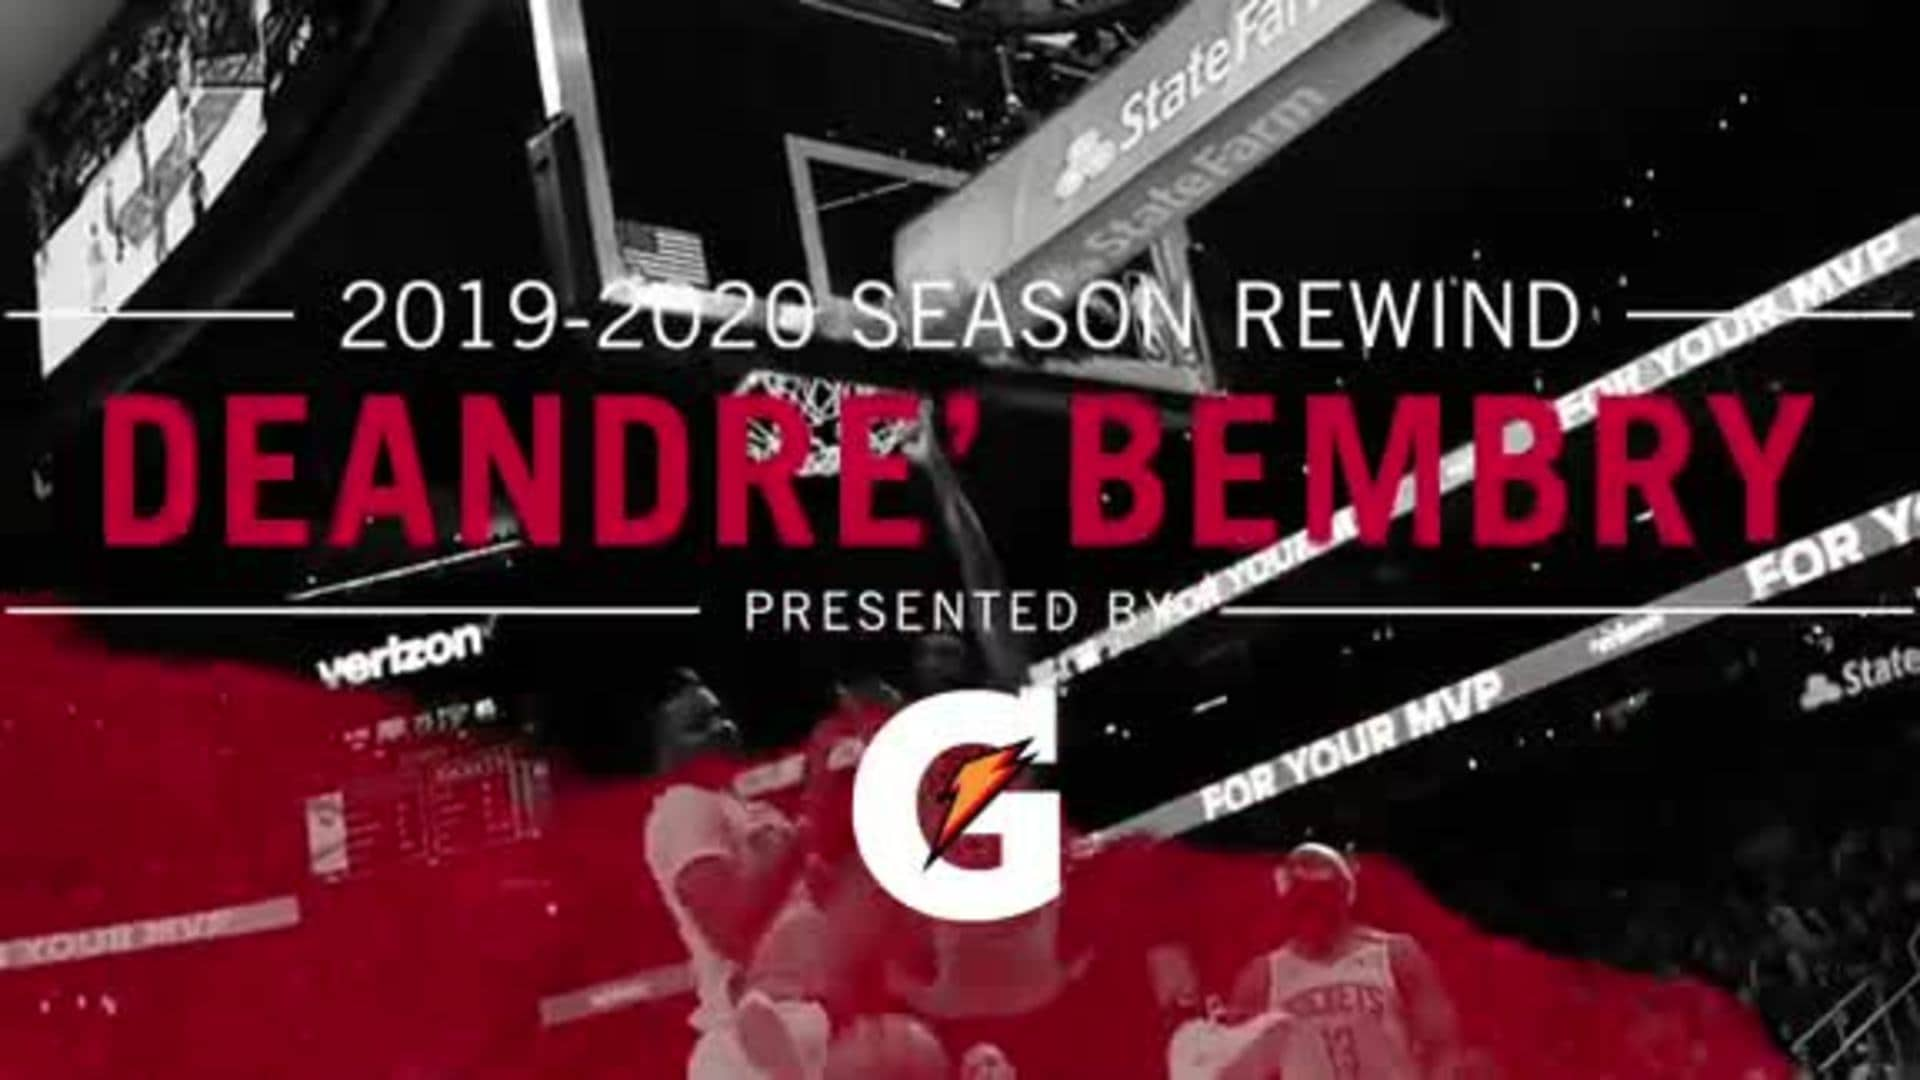 2019-2020 Season Rewind Presented by Gatorade: DeAndre' Bembry's Top Plays